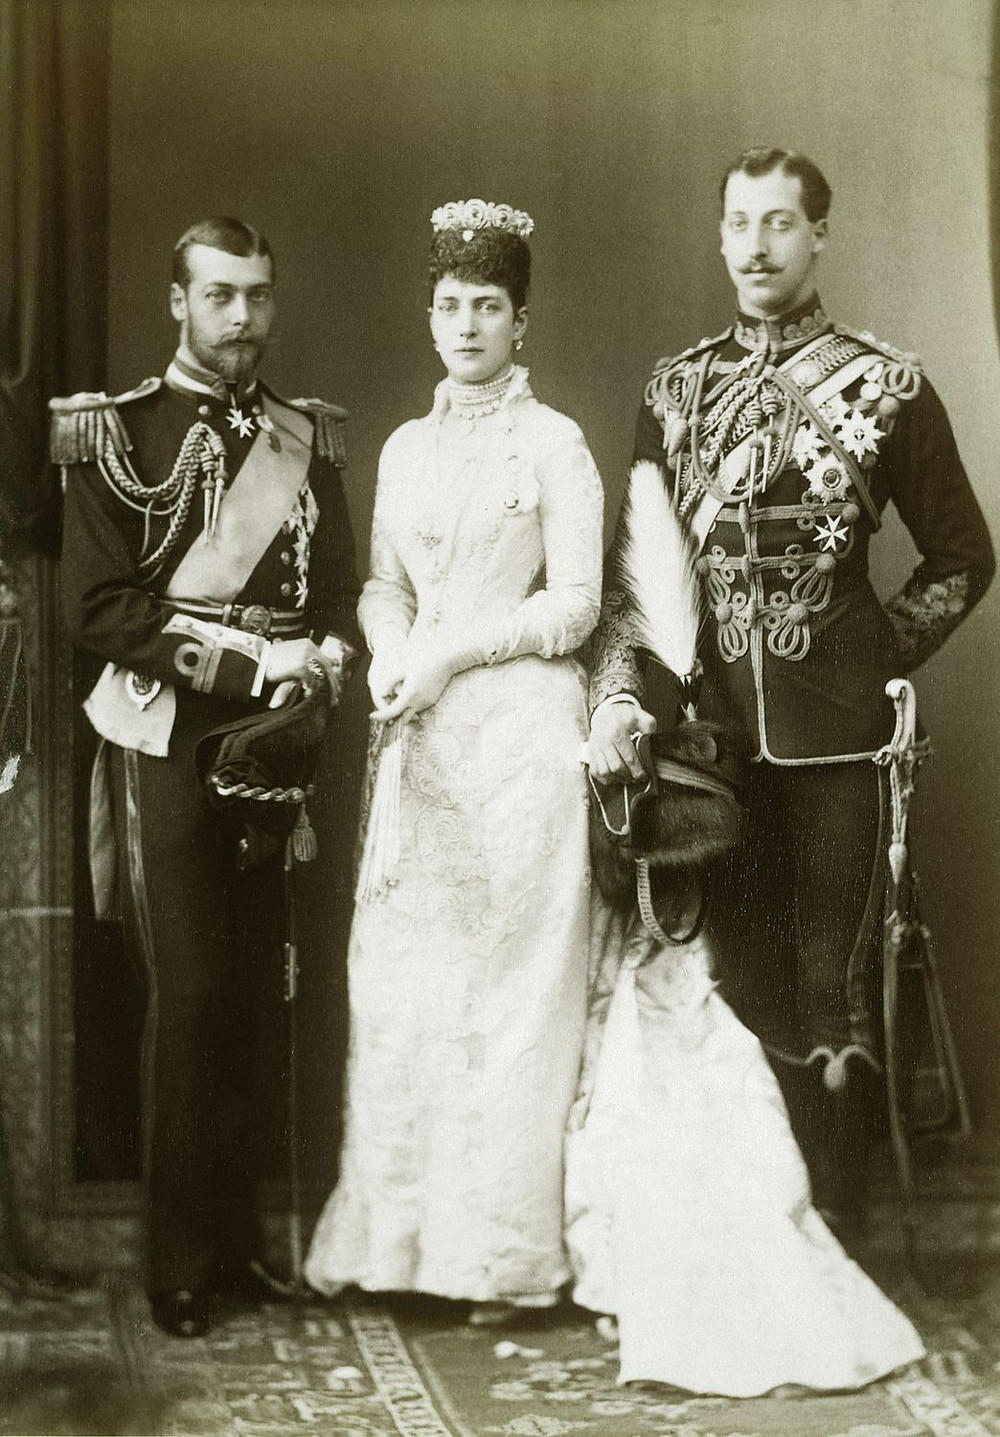 RCIN 2904795;Alexandra, Princess of Wales with her sons, Prince Albert Victor & Prince George, 27th July 1889; Royal Collection Trust/© Her Majesty Queen Elizabeth II 2018